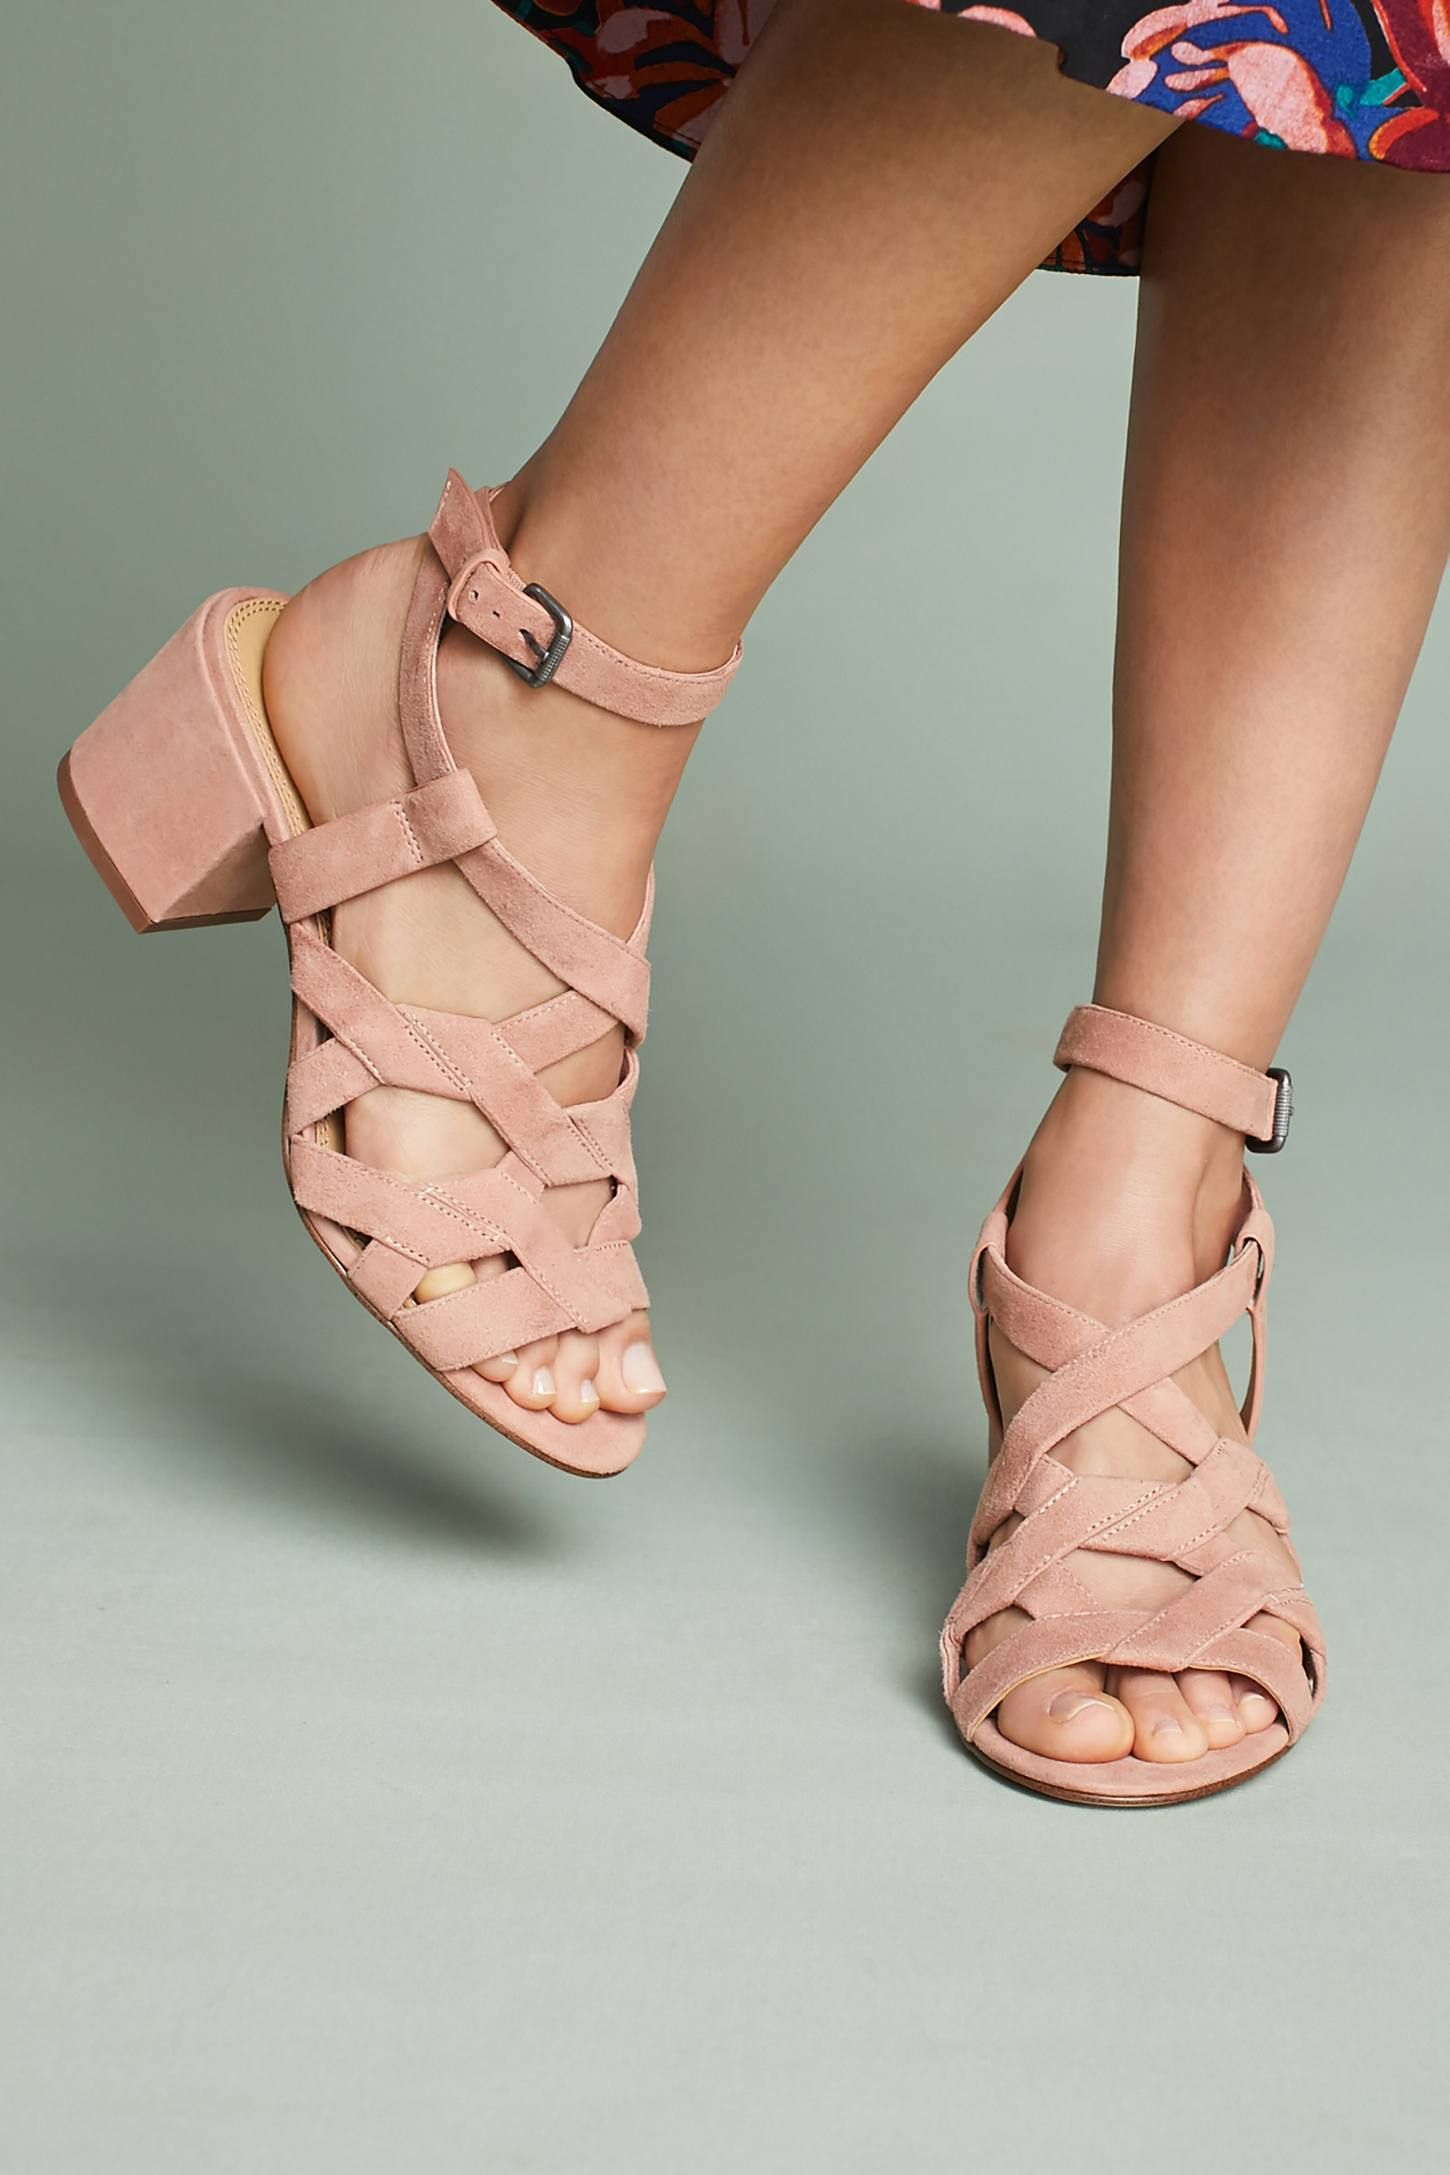 b51bfa5a9851 Shop the Splendid Barrymore Block Heel and more Anthropologie at  Anthropologie. Read reviews